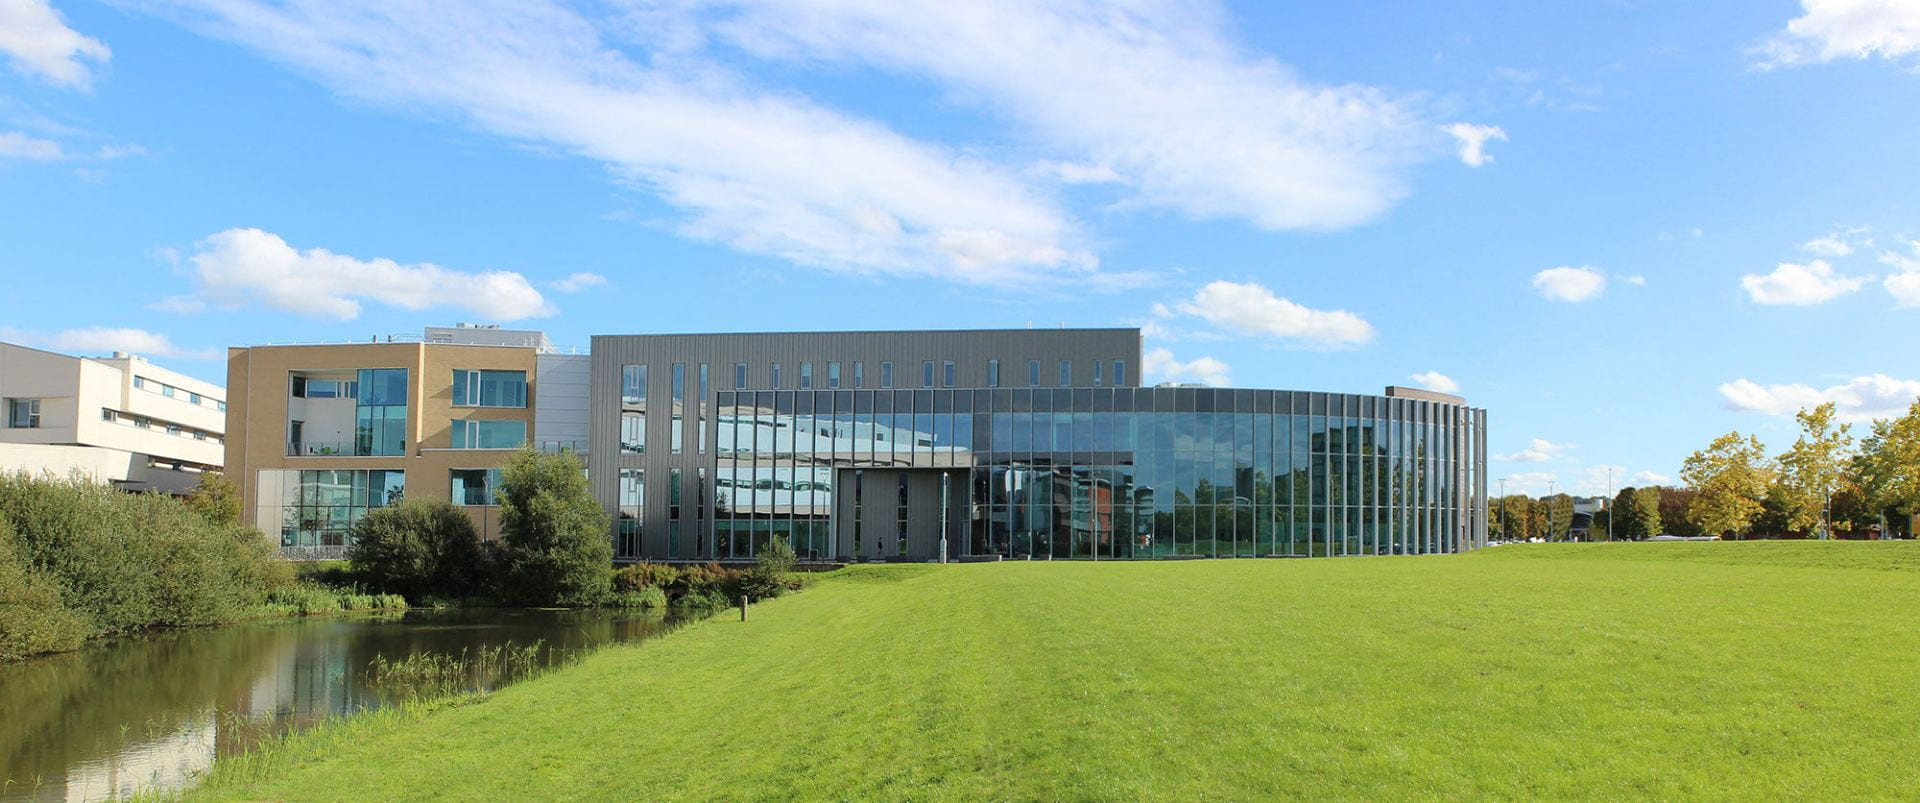 A panorama photo of the Isaac Newton Building at the University of Lincoln.